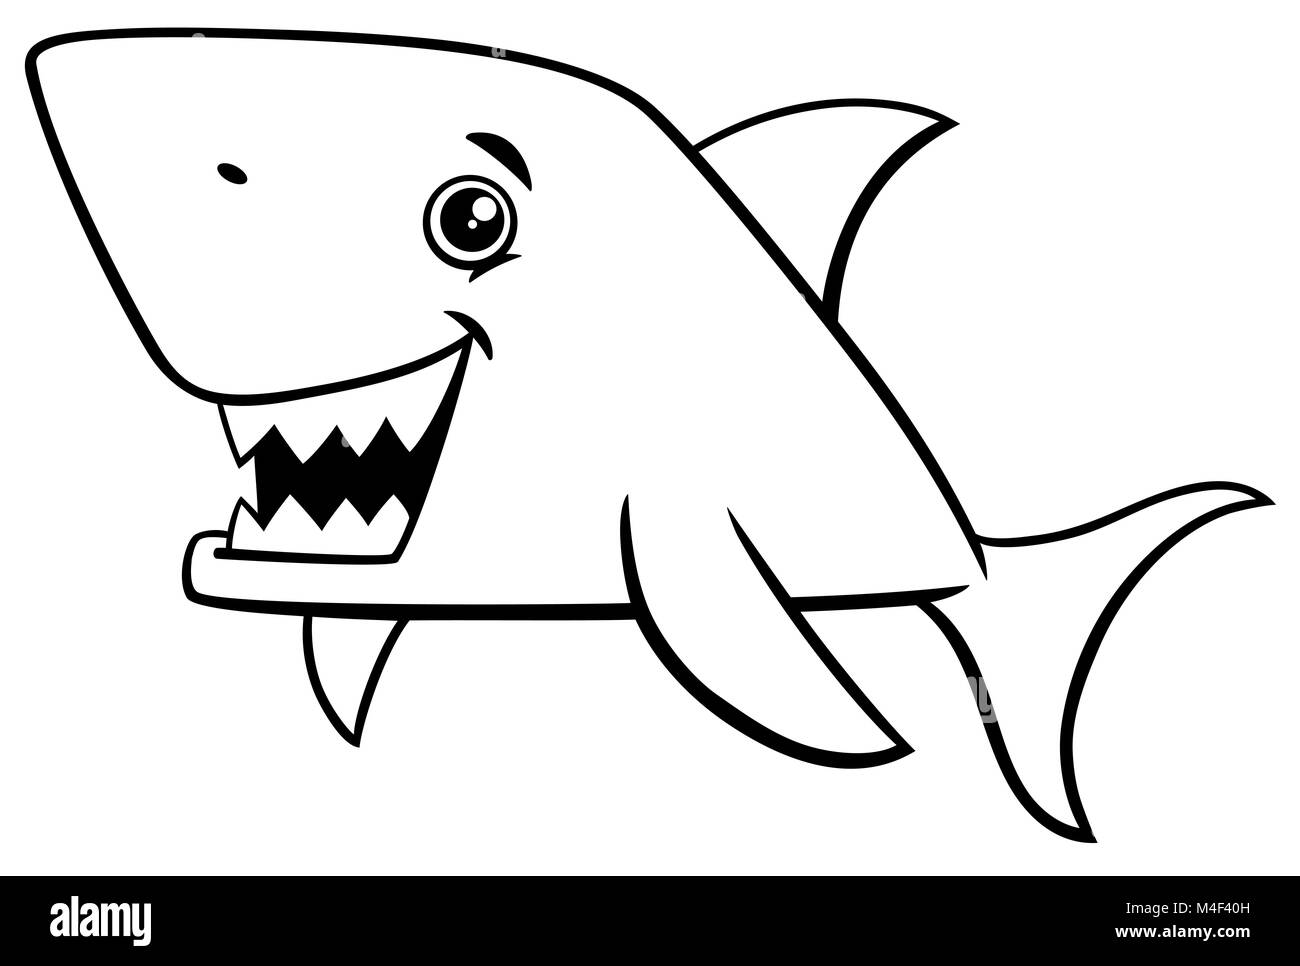 shark fish coloring page Stock Photo: 174894737 - Alamy